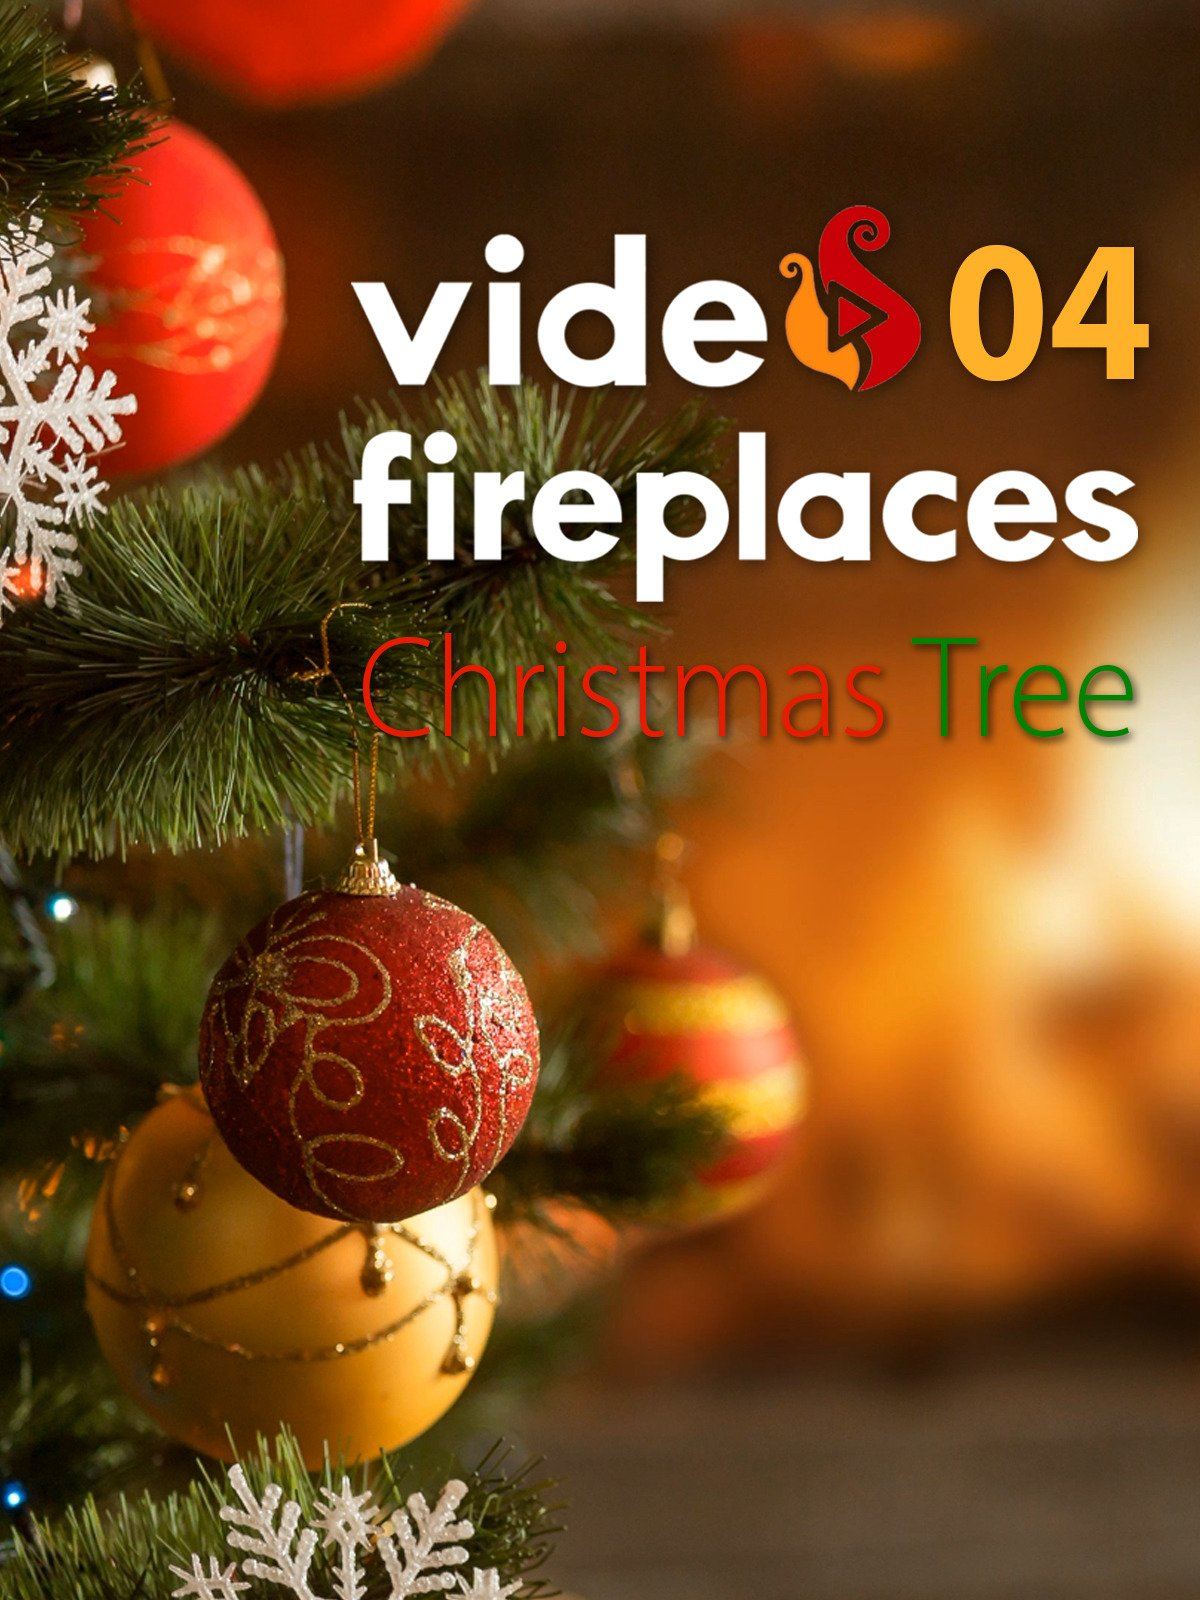 Video Fireplace 04 & Christmas Tree